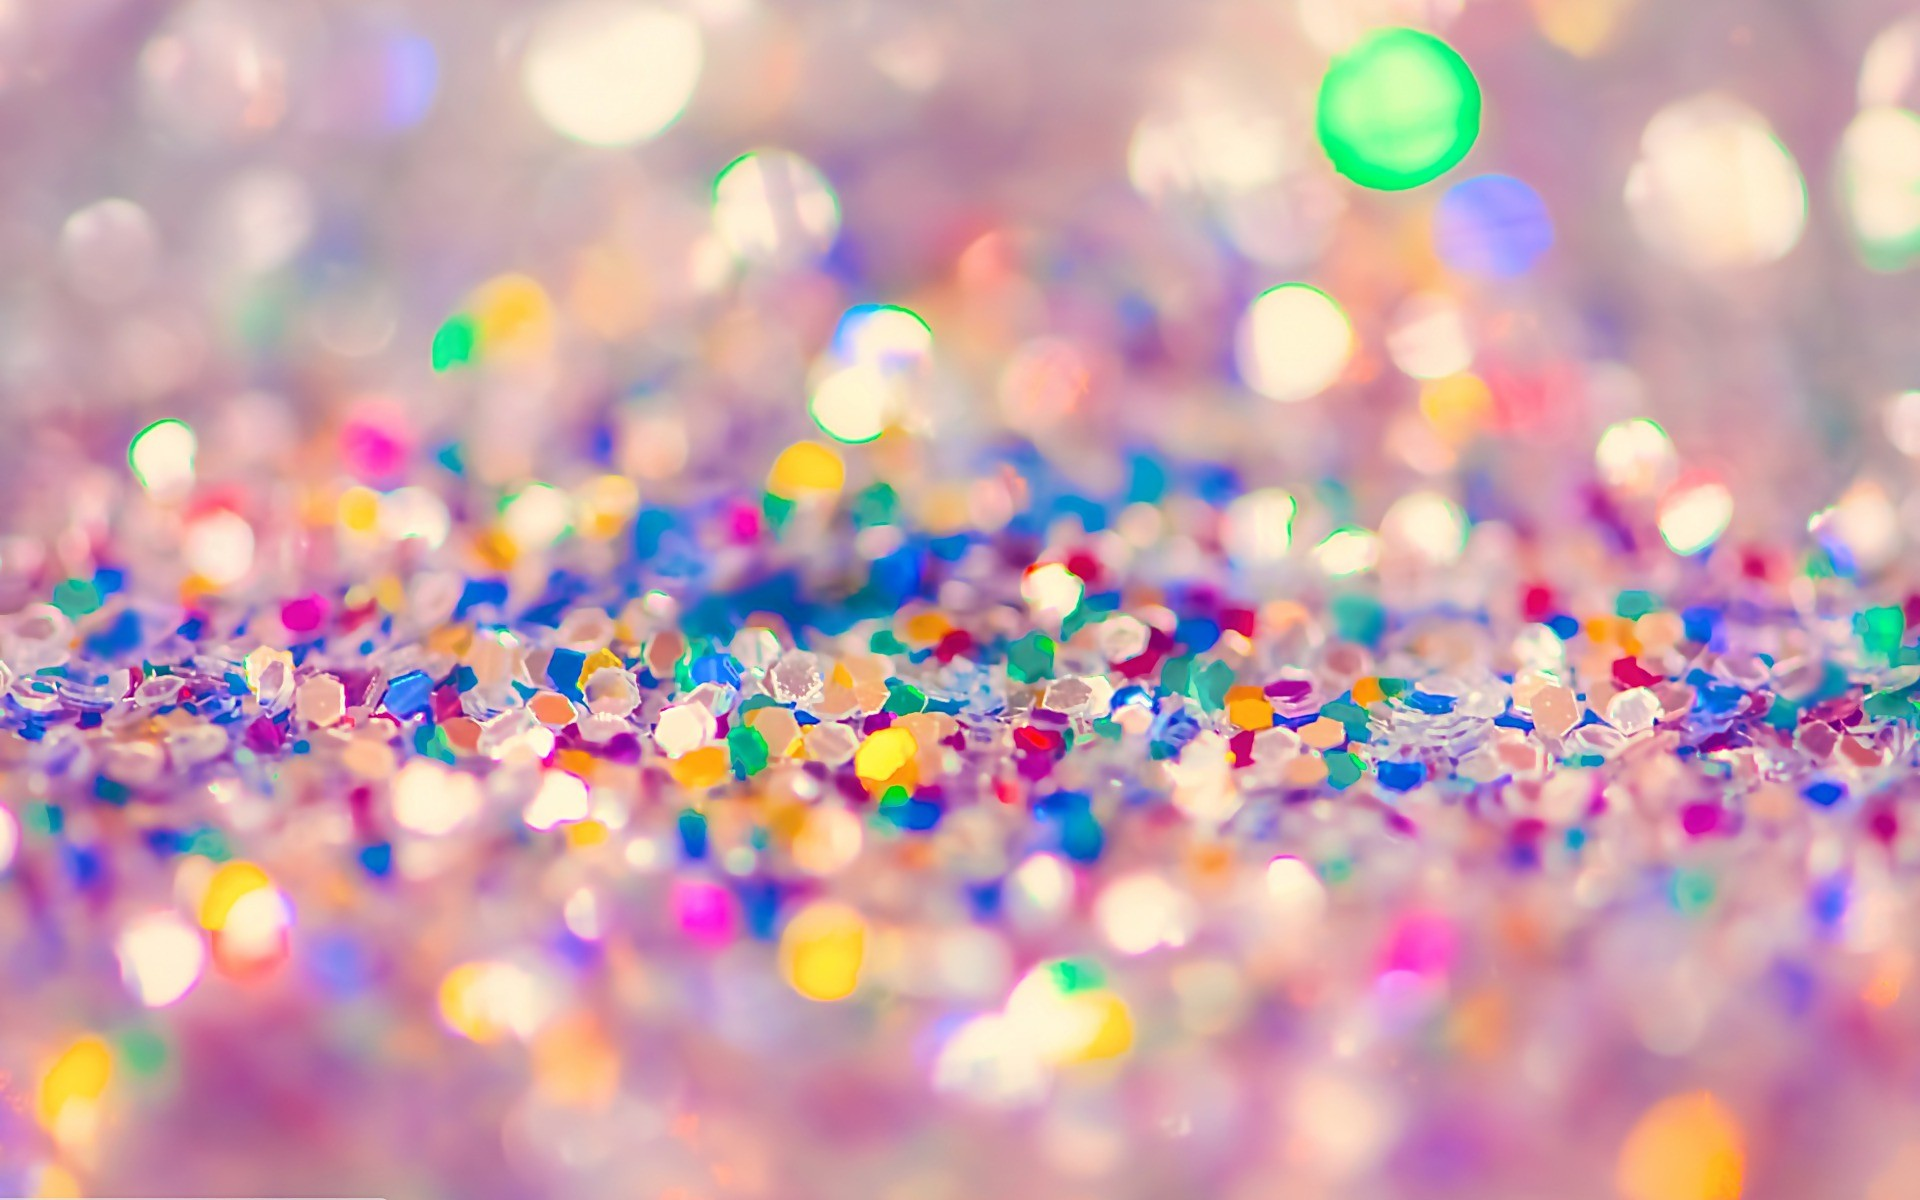 1920x1200 Colorful Sparkle HD Wallpaper.